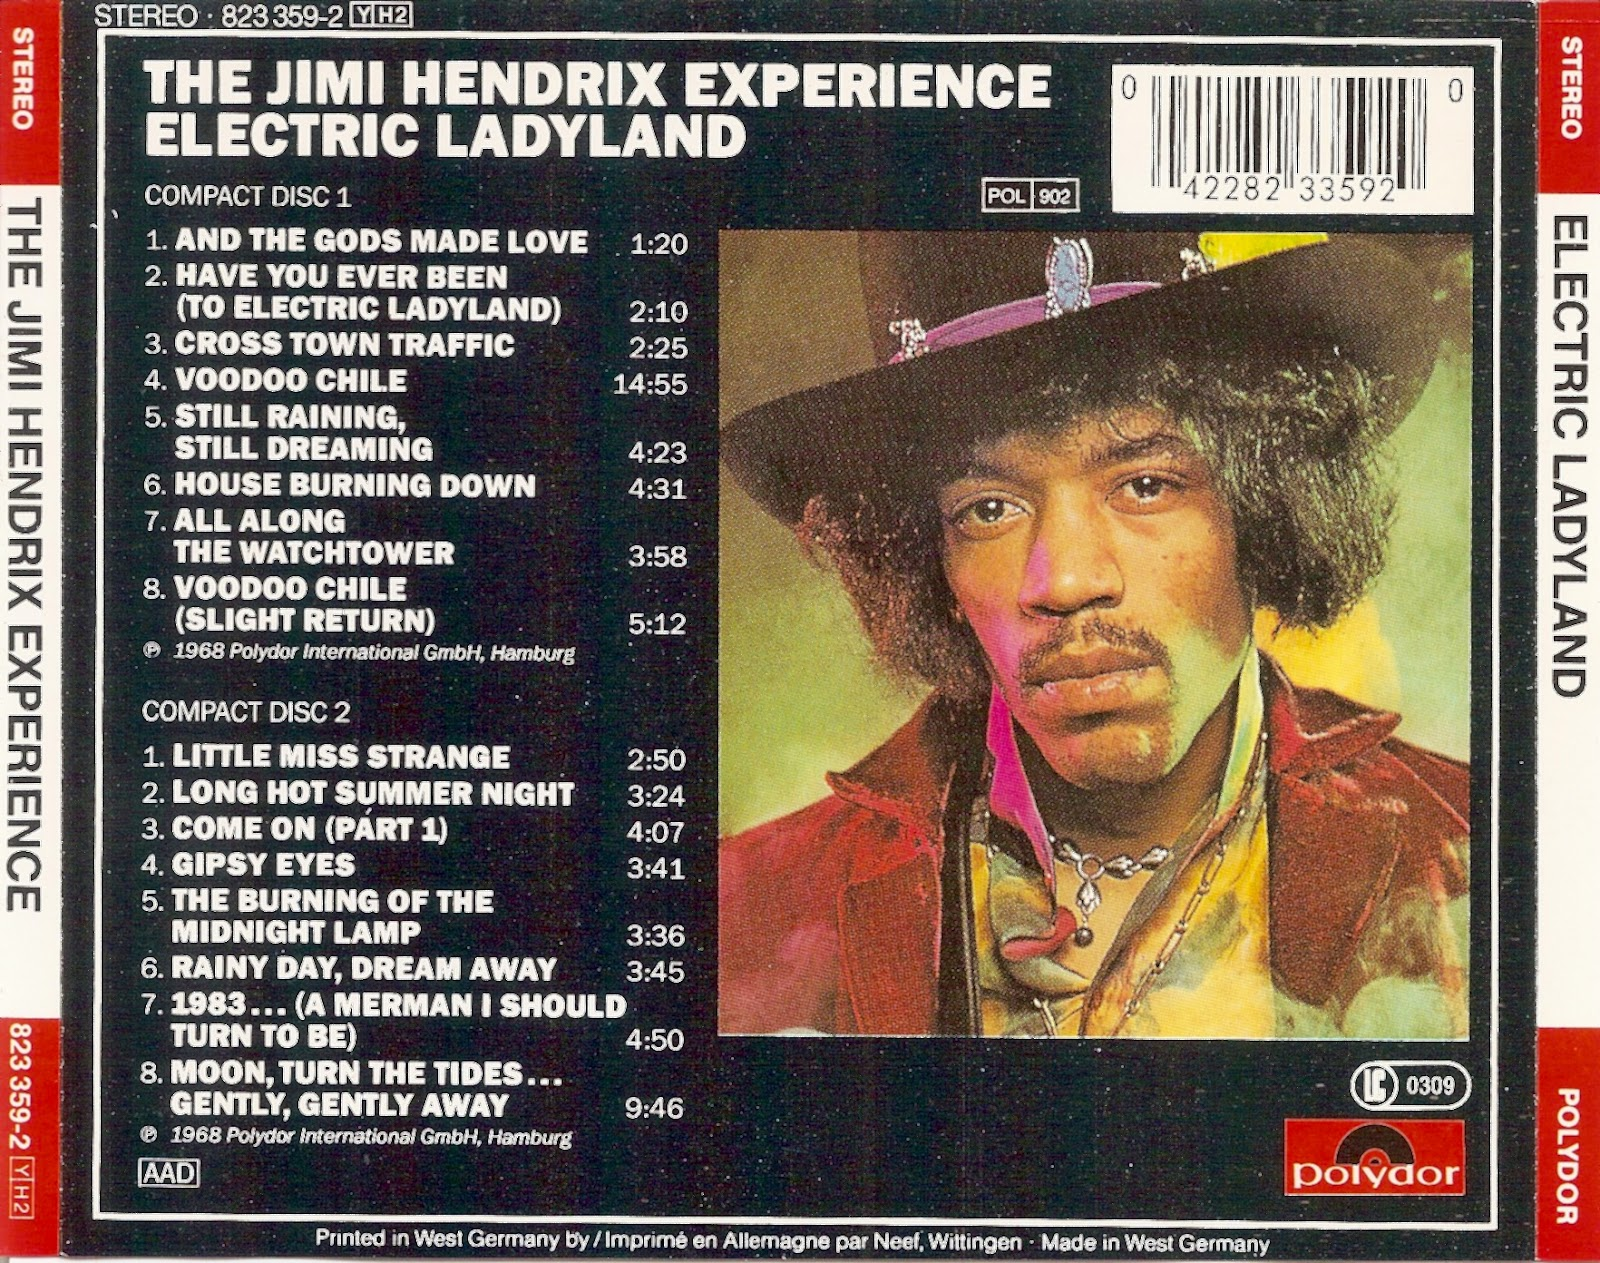 The First Pressing Cd Collection The Jimi Hendrix